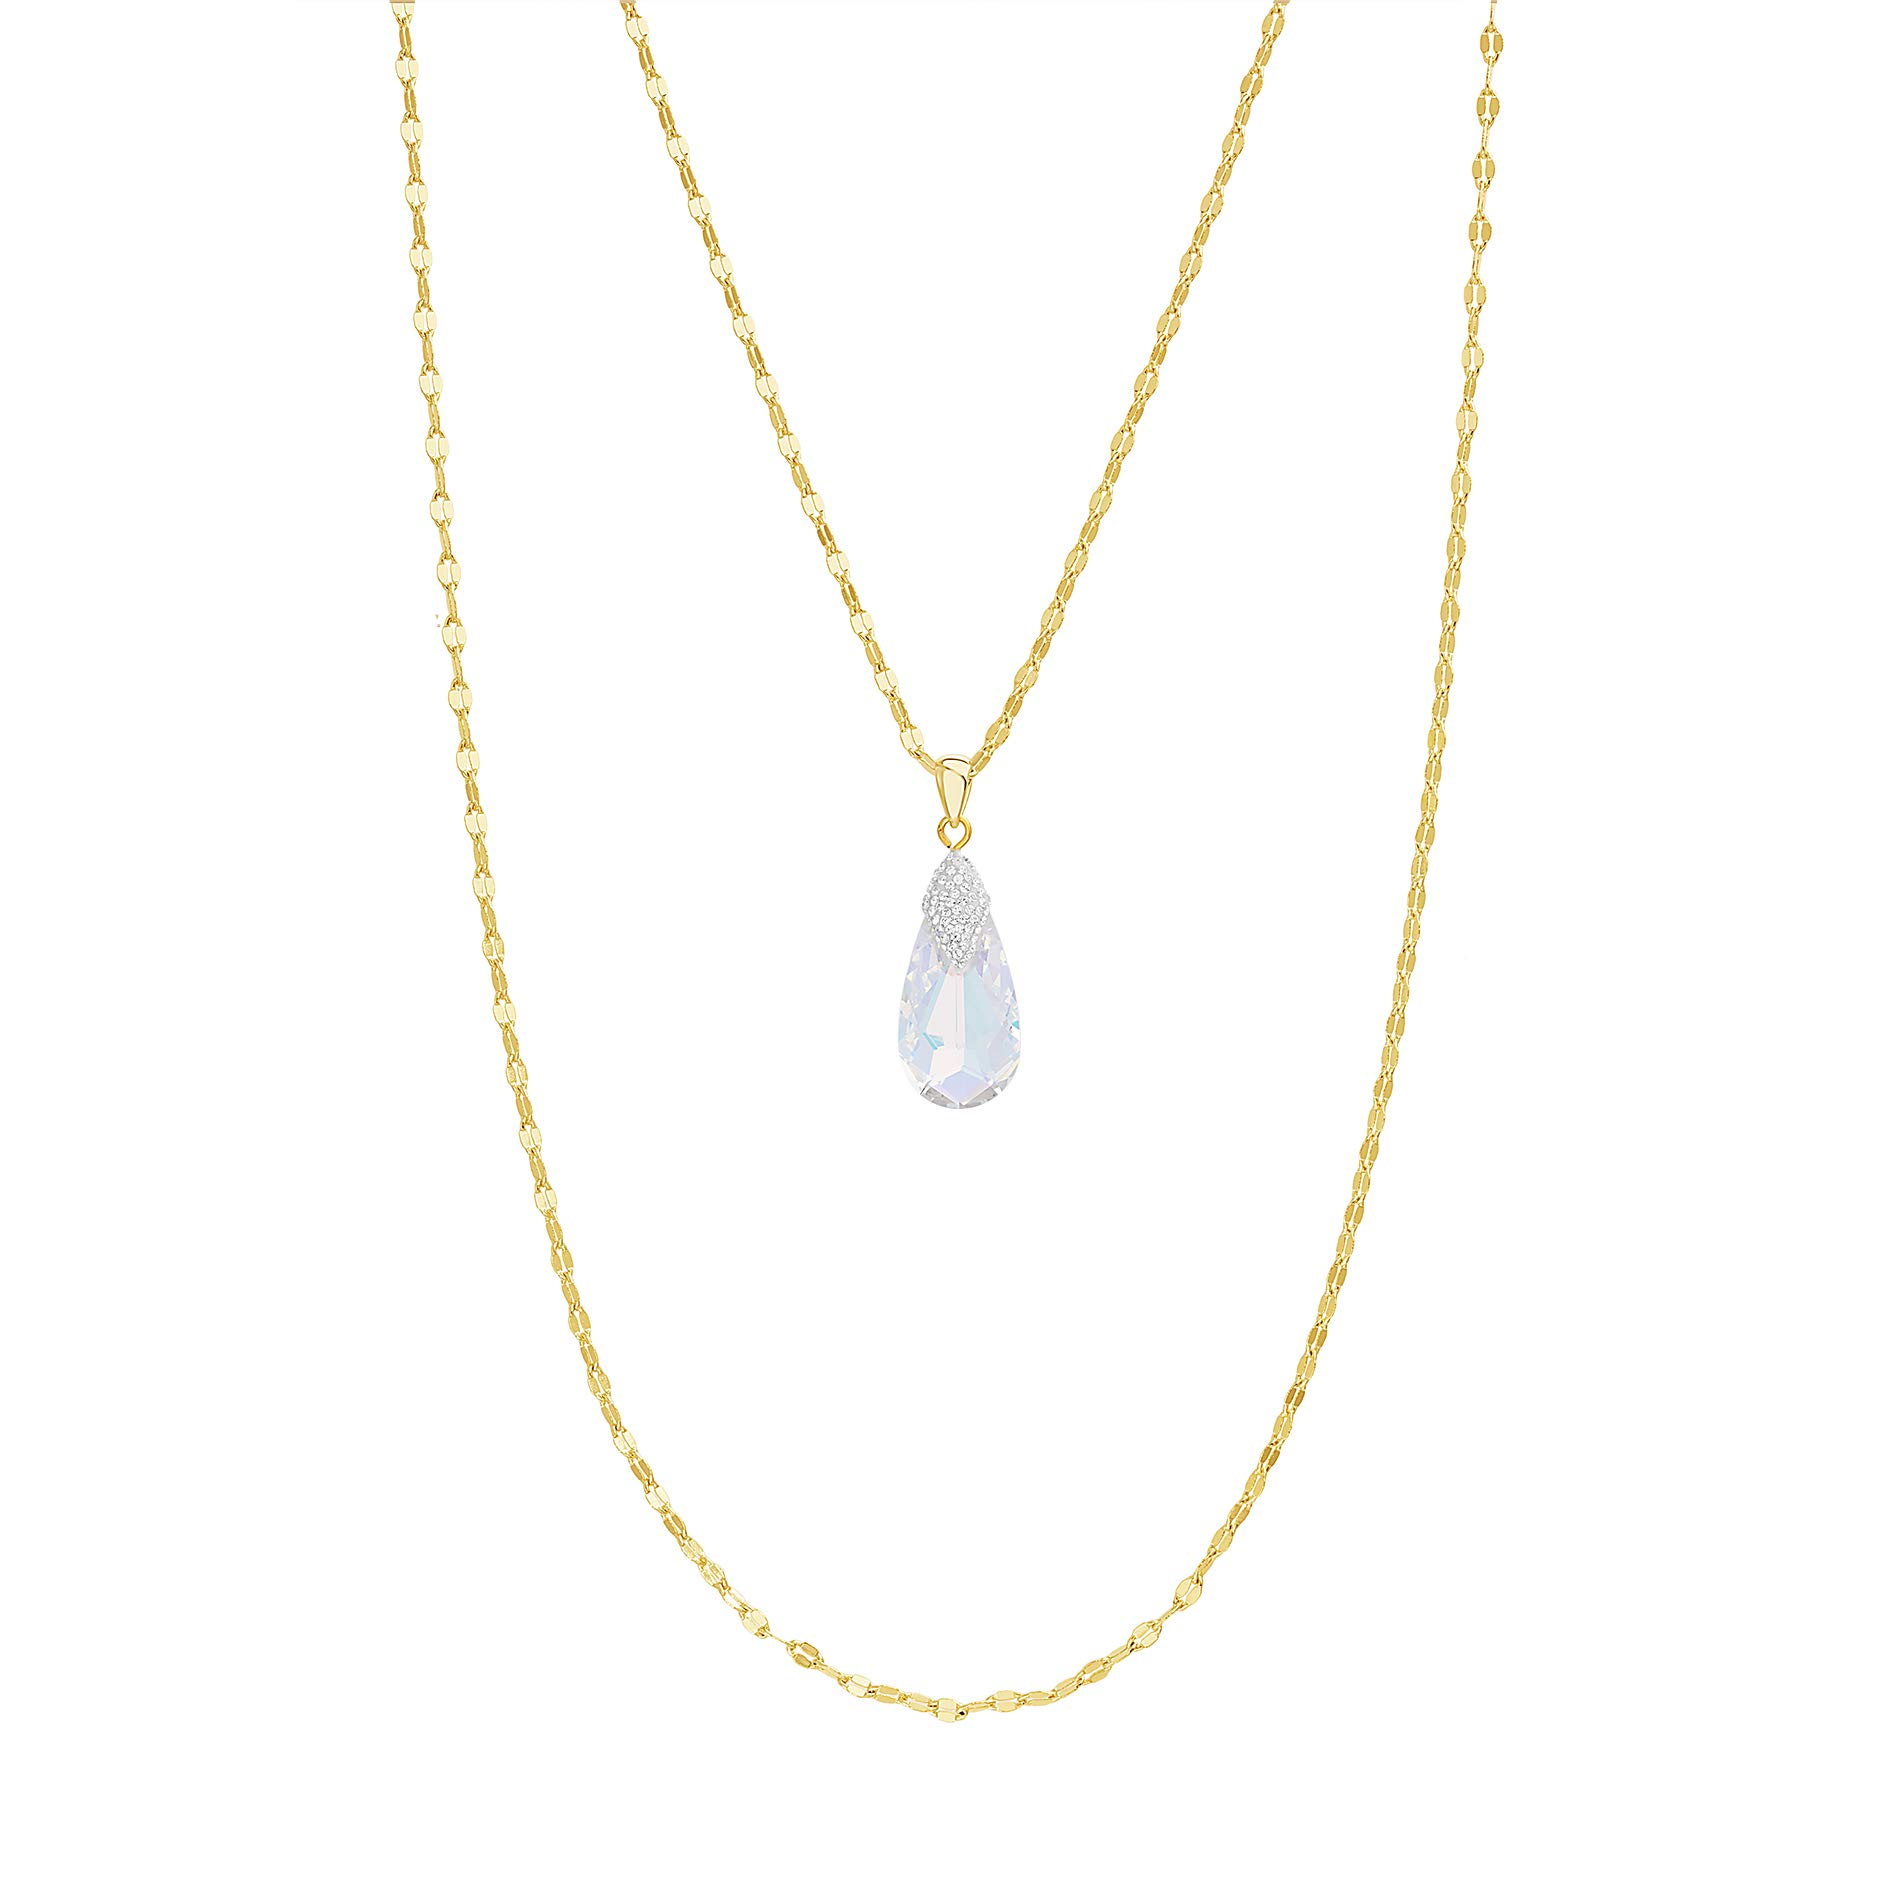 Devin Rose Yellow Gold Plated Sterling Silver Double Layered Teardrop Necklace for Women made With Swarovski Crystals (Color: Aurore Boreale)